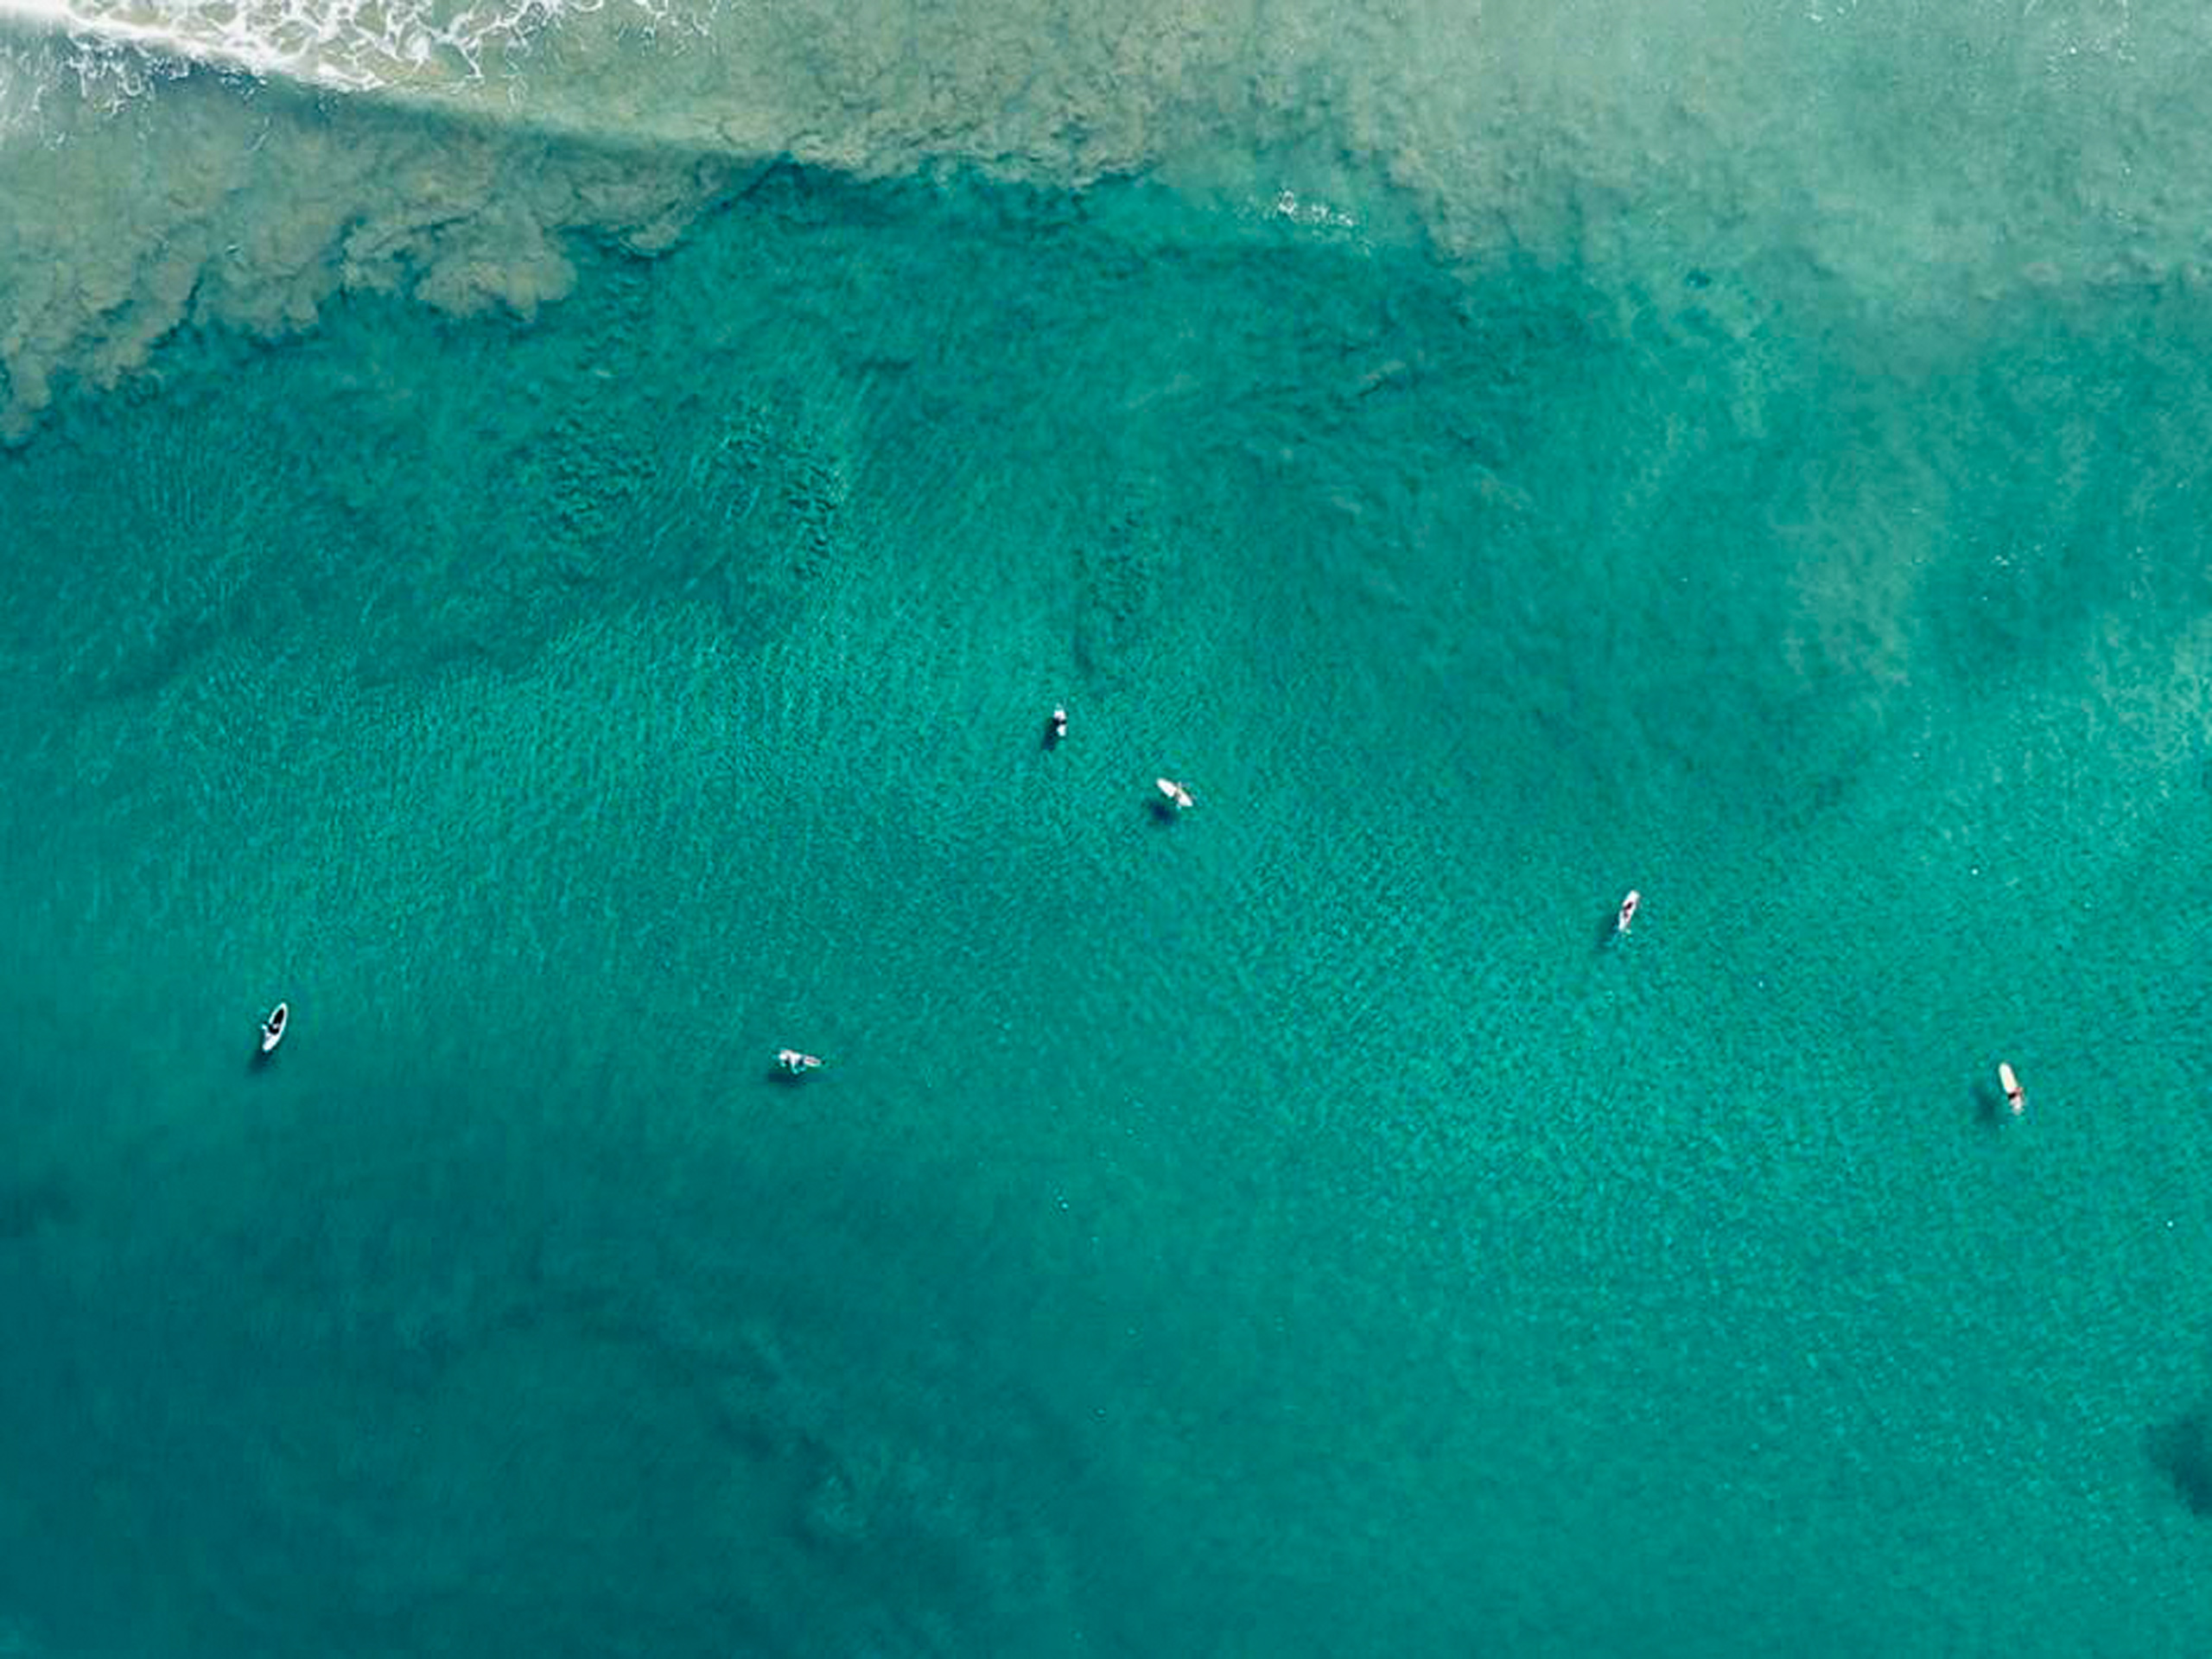 Surfers are waiting for the wave